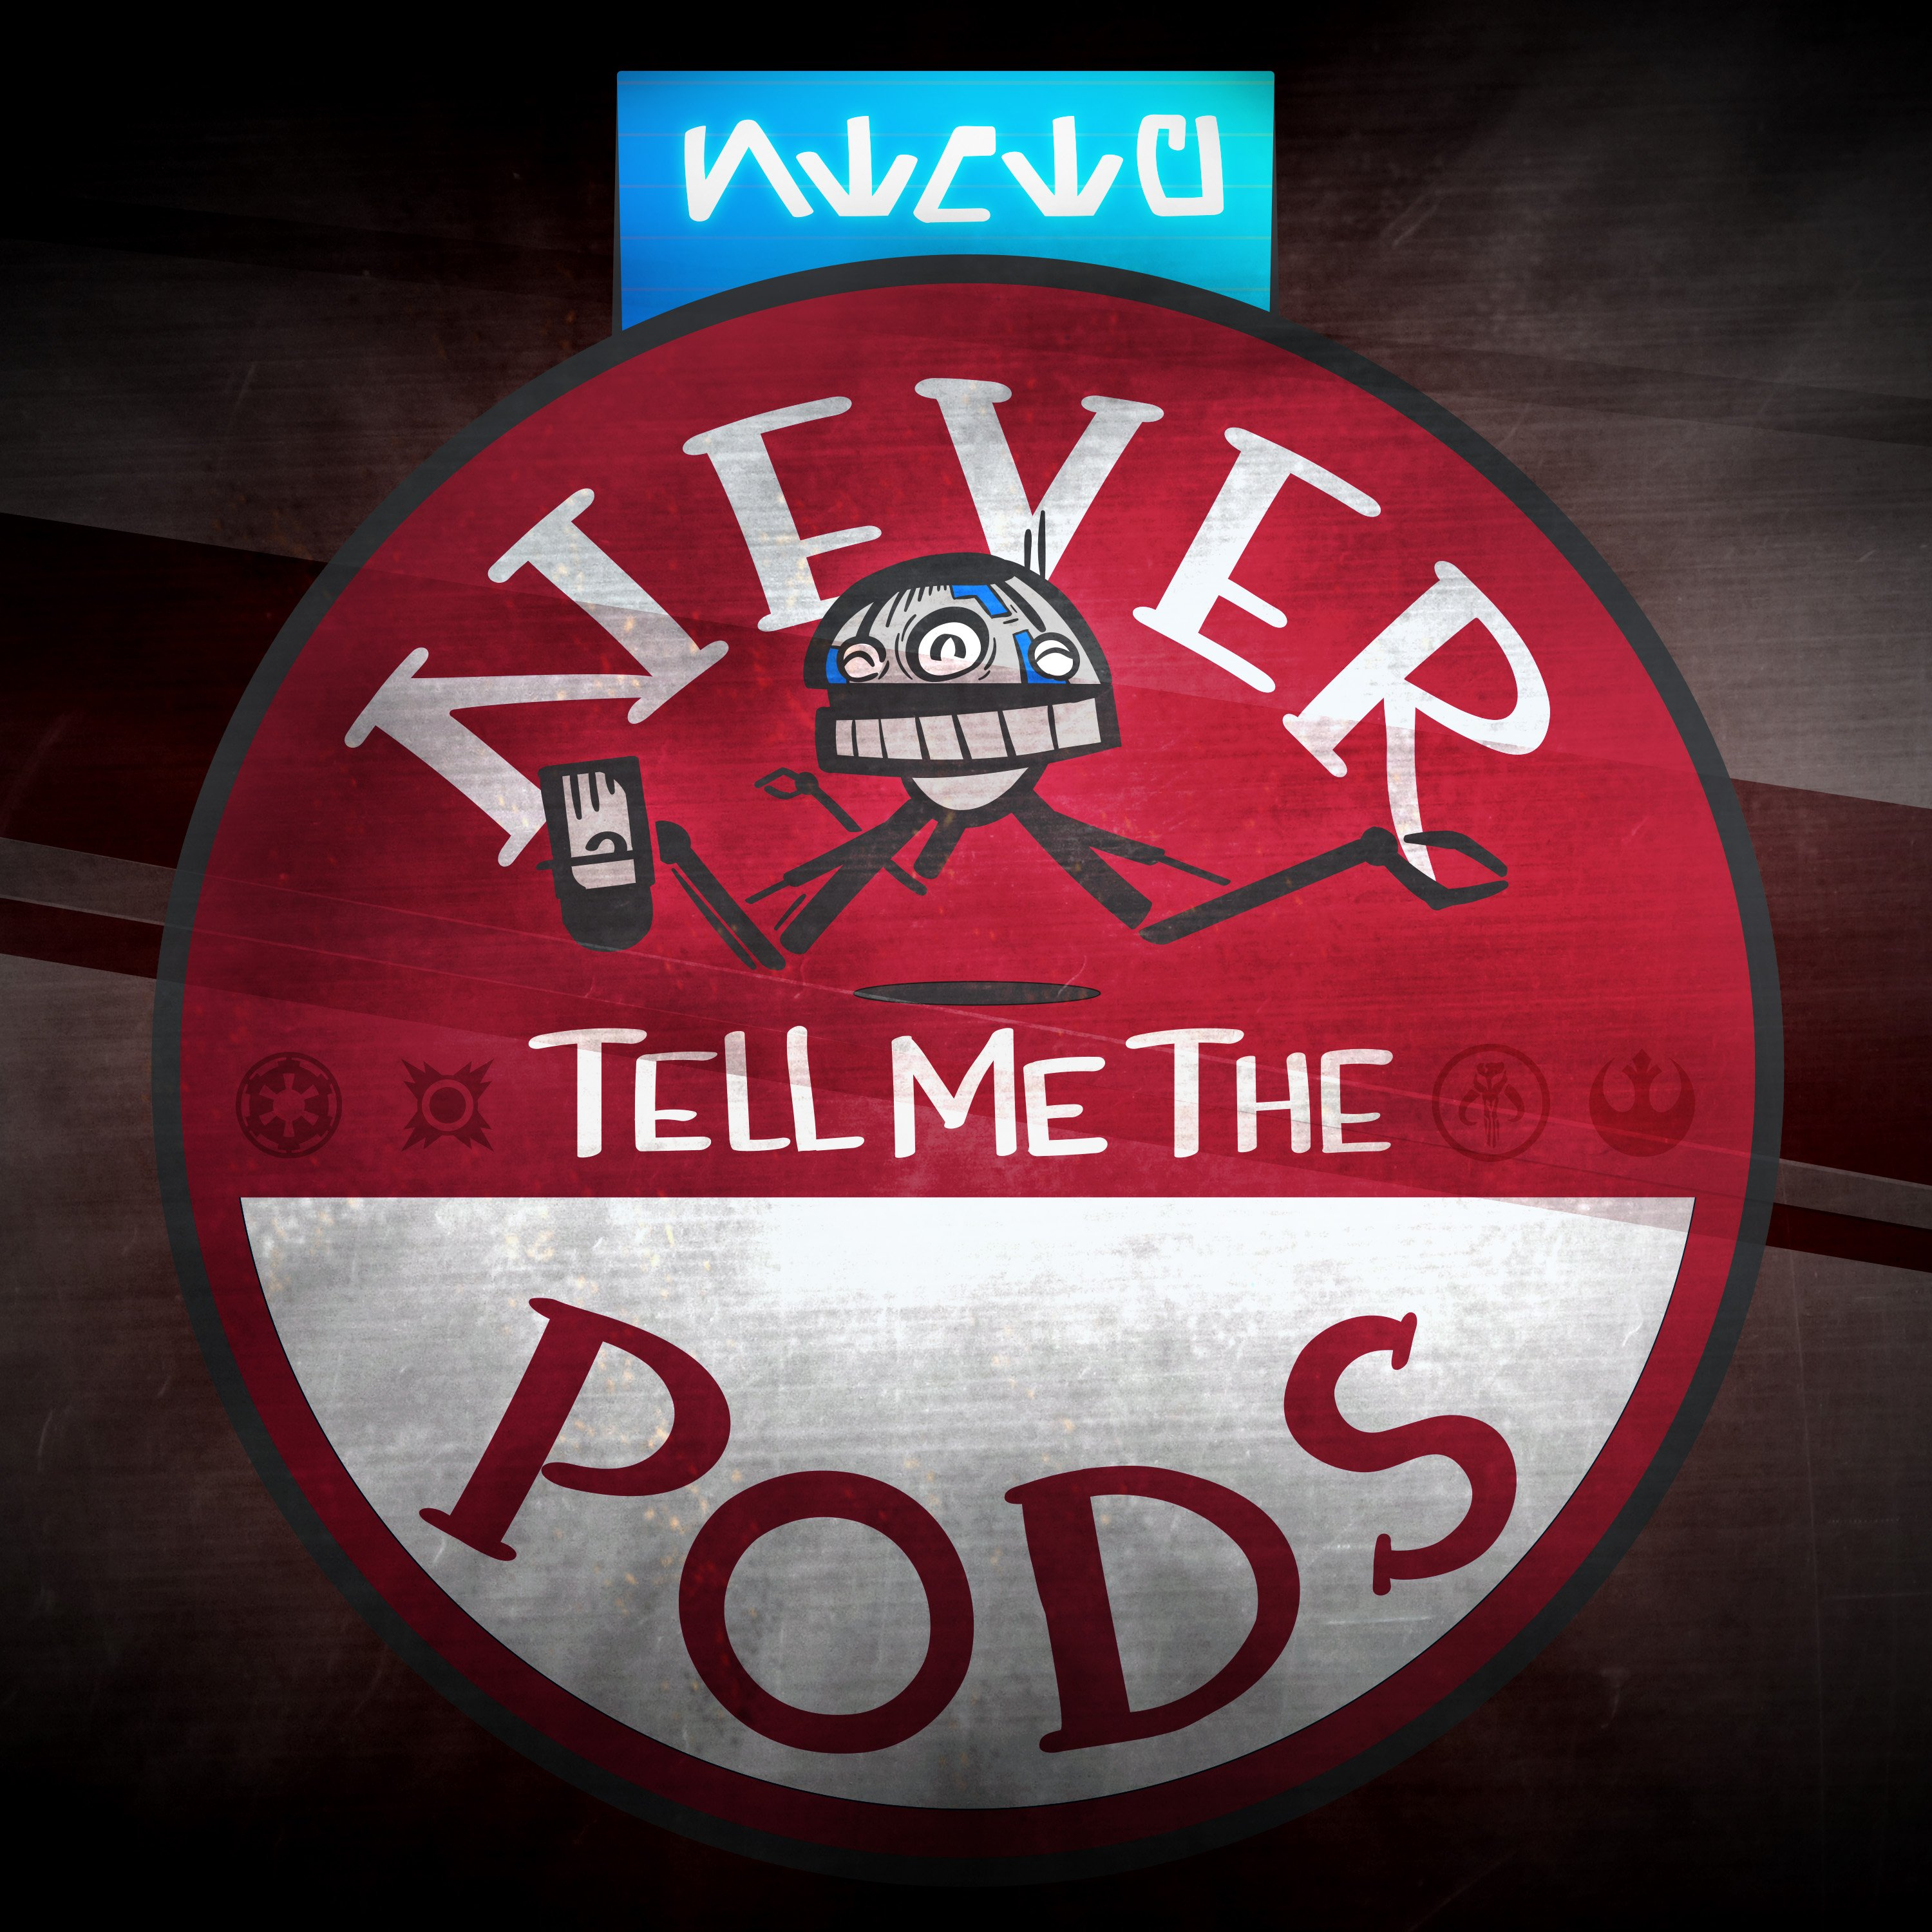 Never Tell Me the Pods show art